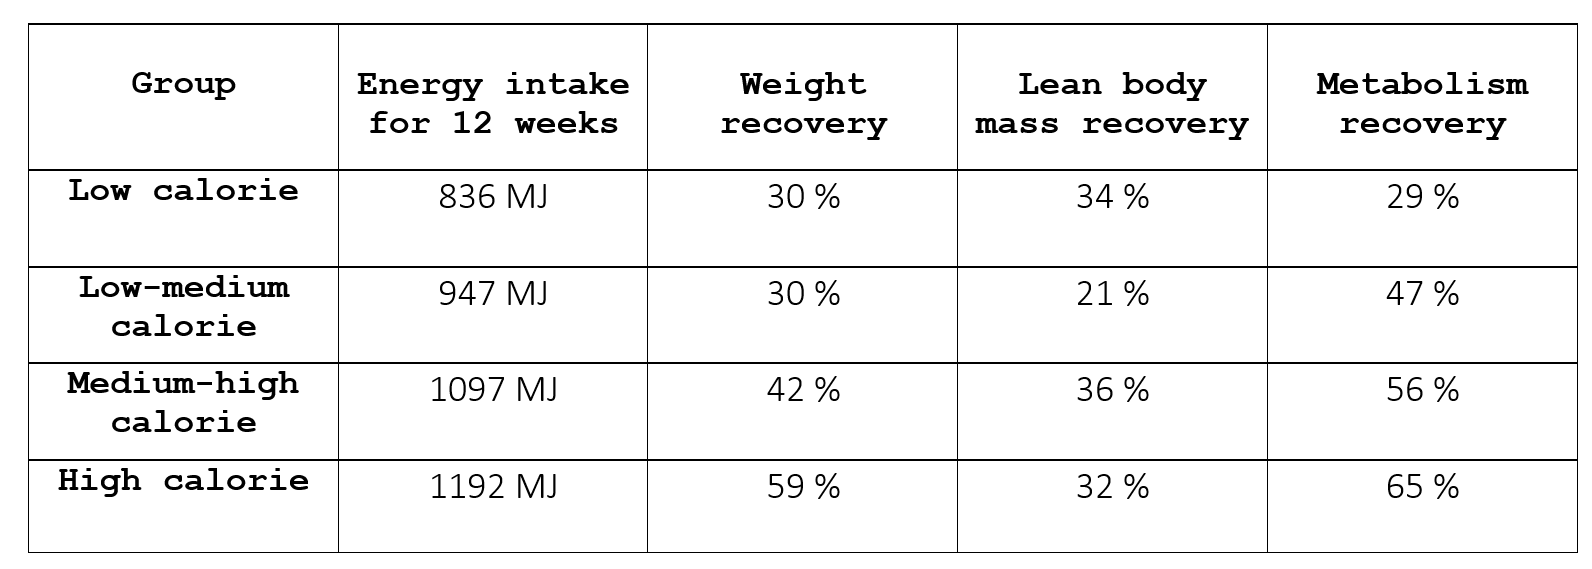 This table shows subjects' recovery levels during the 12-week controlled recovery period. 'Energy intake for 12 weeks' represents the sum of calories each subject consumed in the 12-week recovery period. The percentage recovery is related to the weight, lean body mass or metabolism change from baseline until the end of the starvation period ( [value after 12 weeks recovery - value at the end of starvation] x 100 / [pre-dieting value - value at the end of starvation] ).